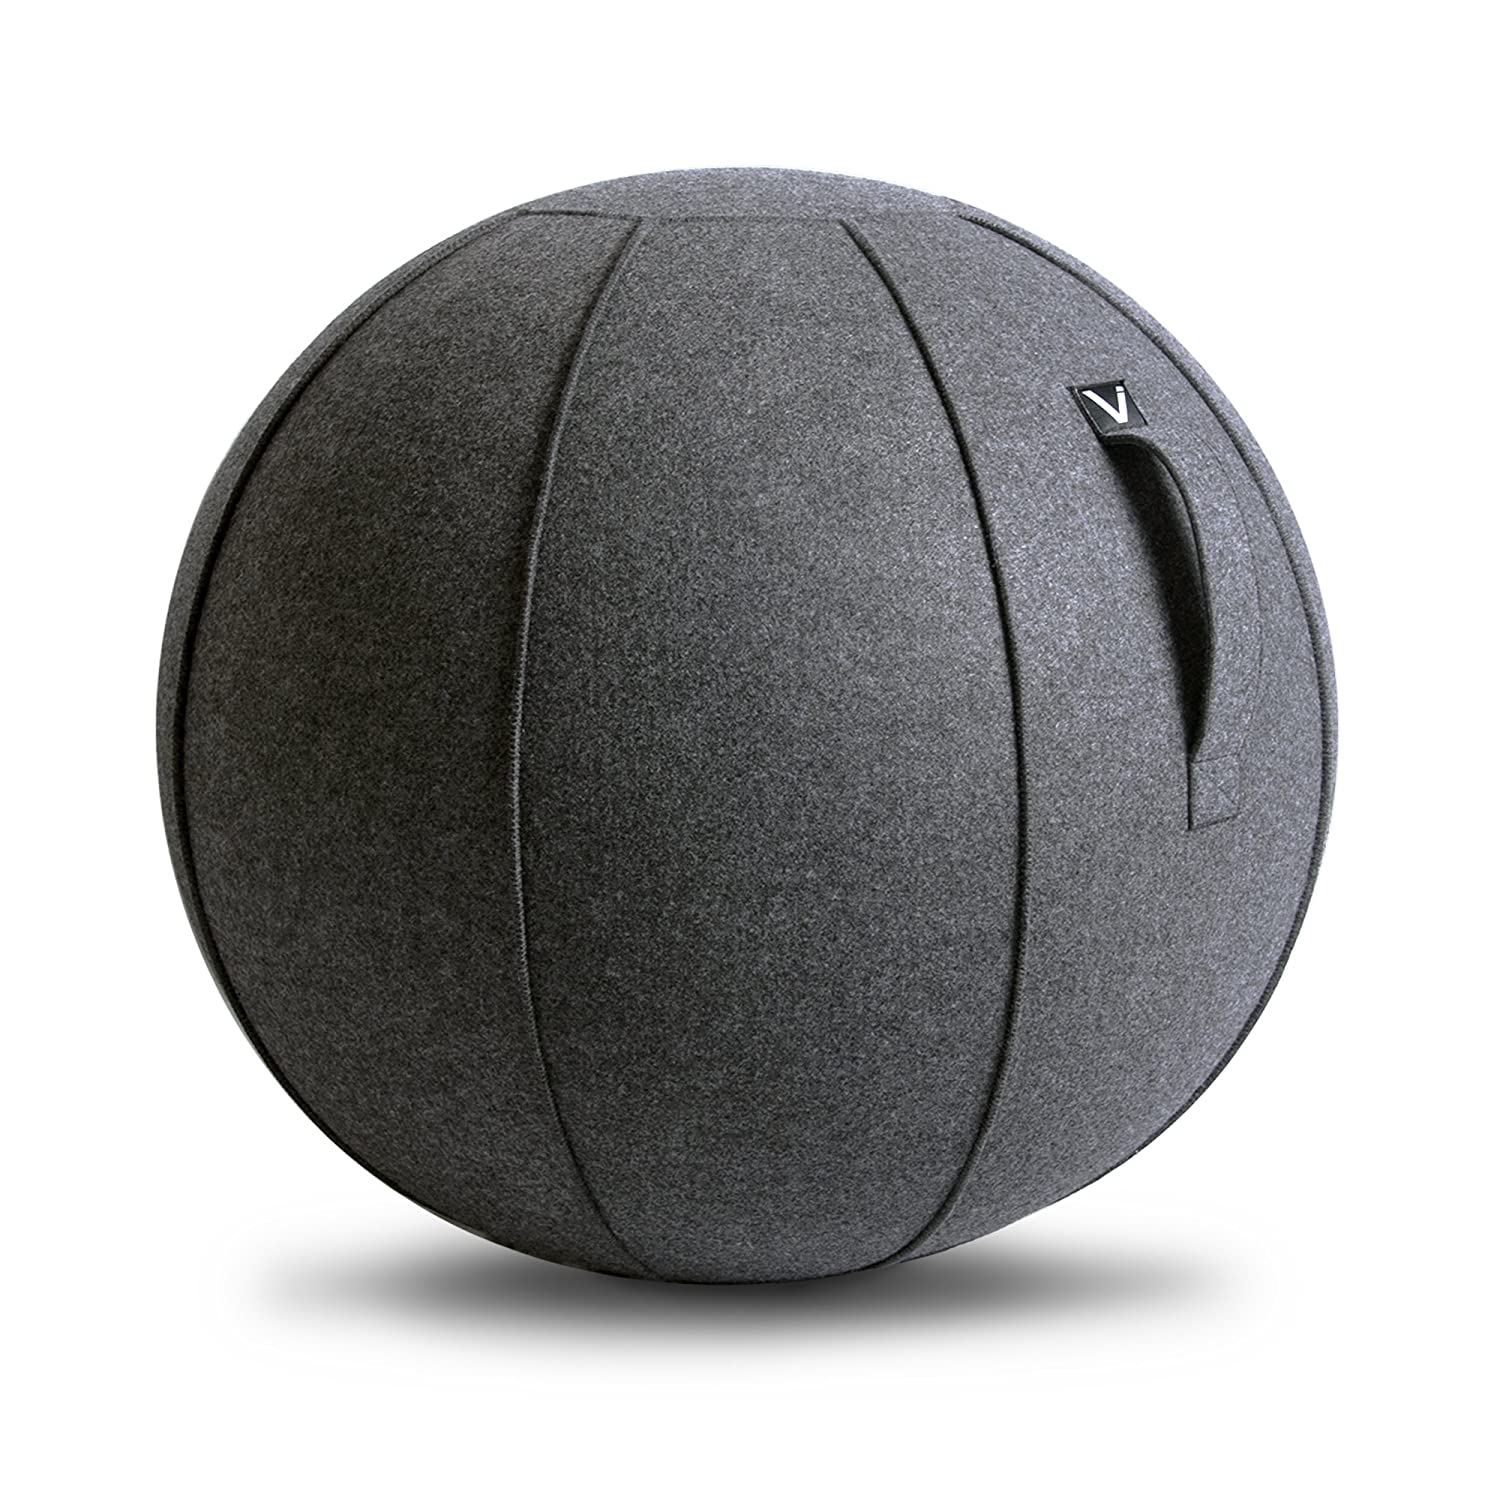 Top 8 Best Cheap Balance Ball Chairs for Sale in 2021 Review